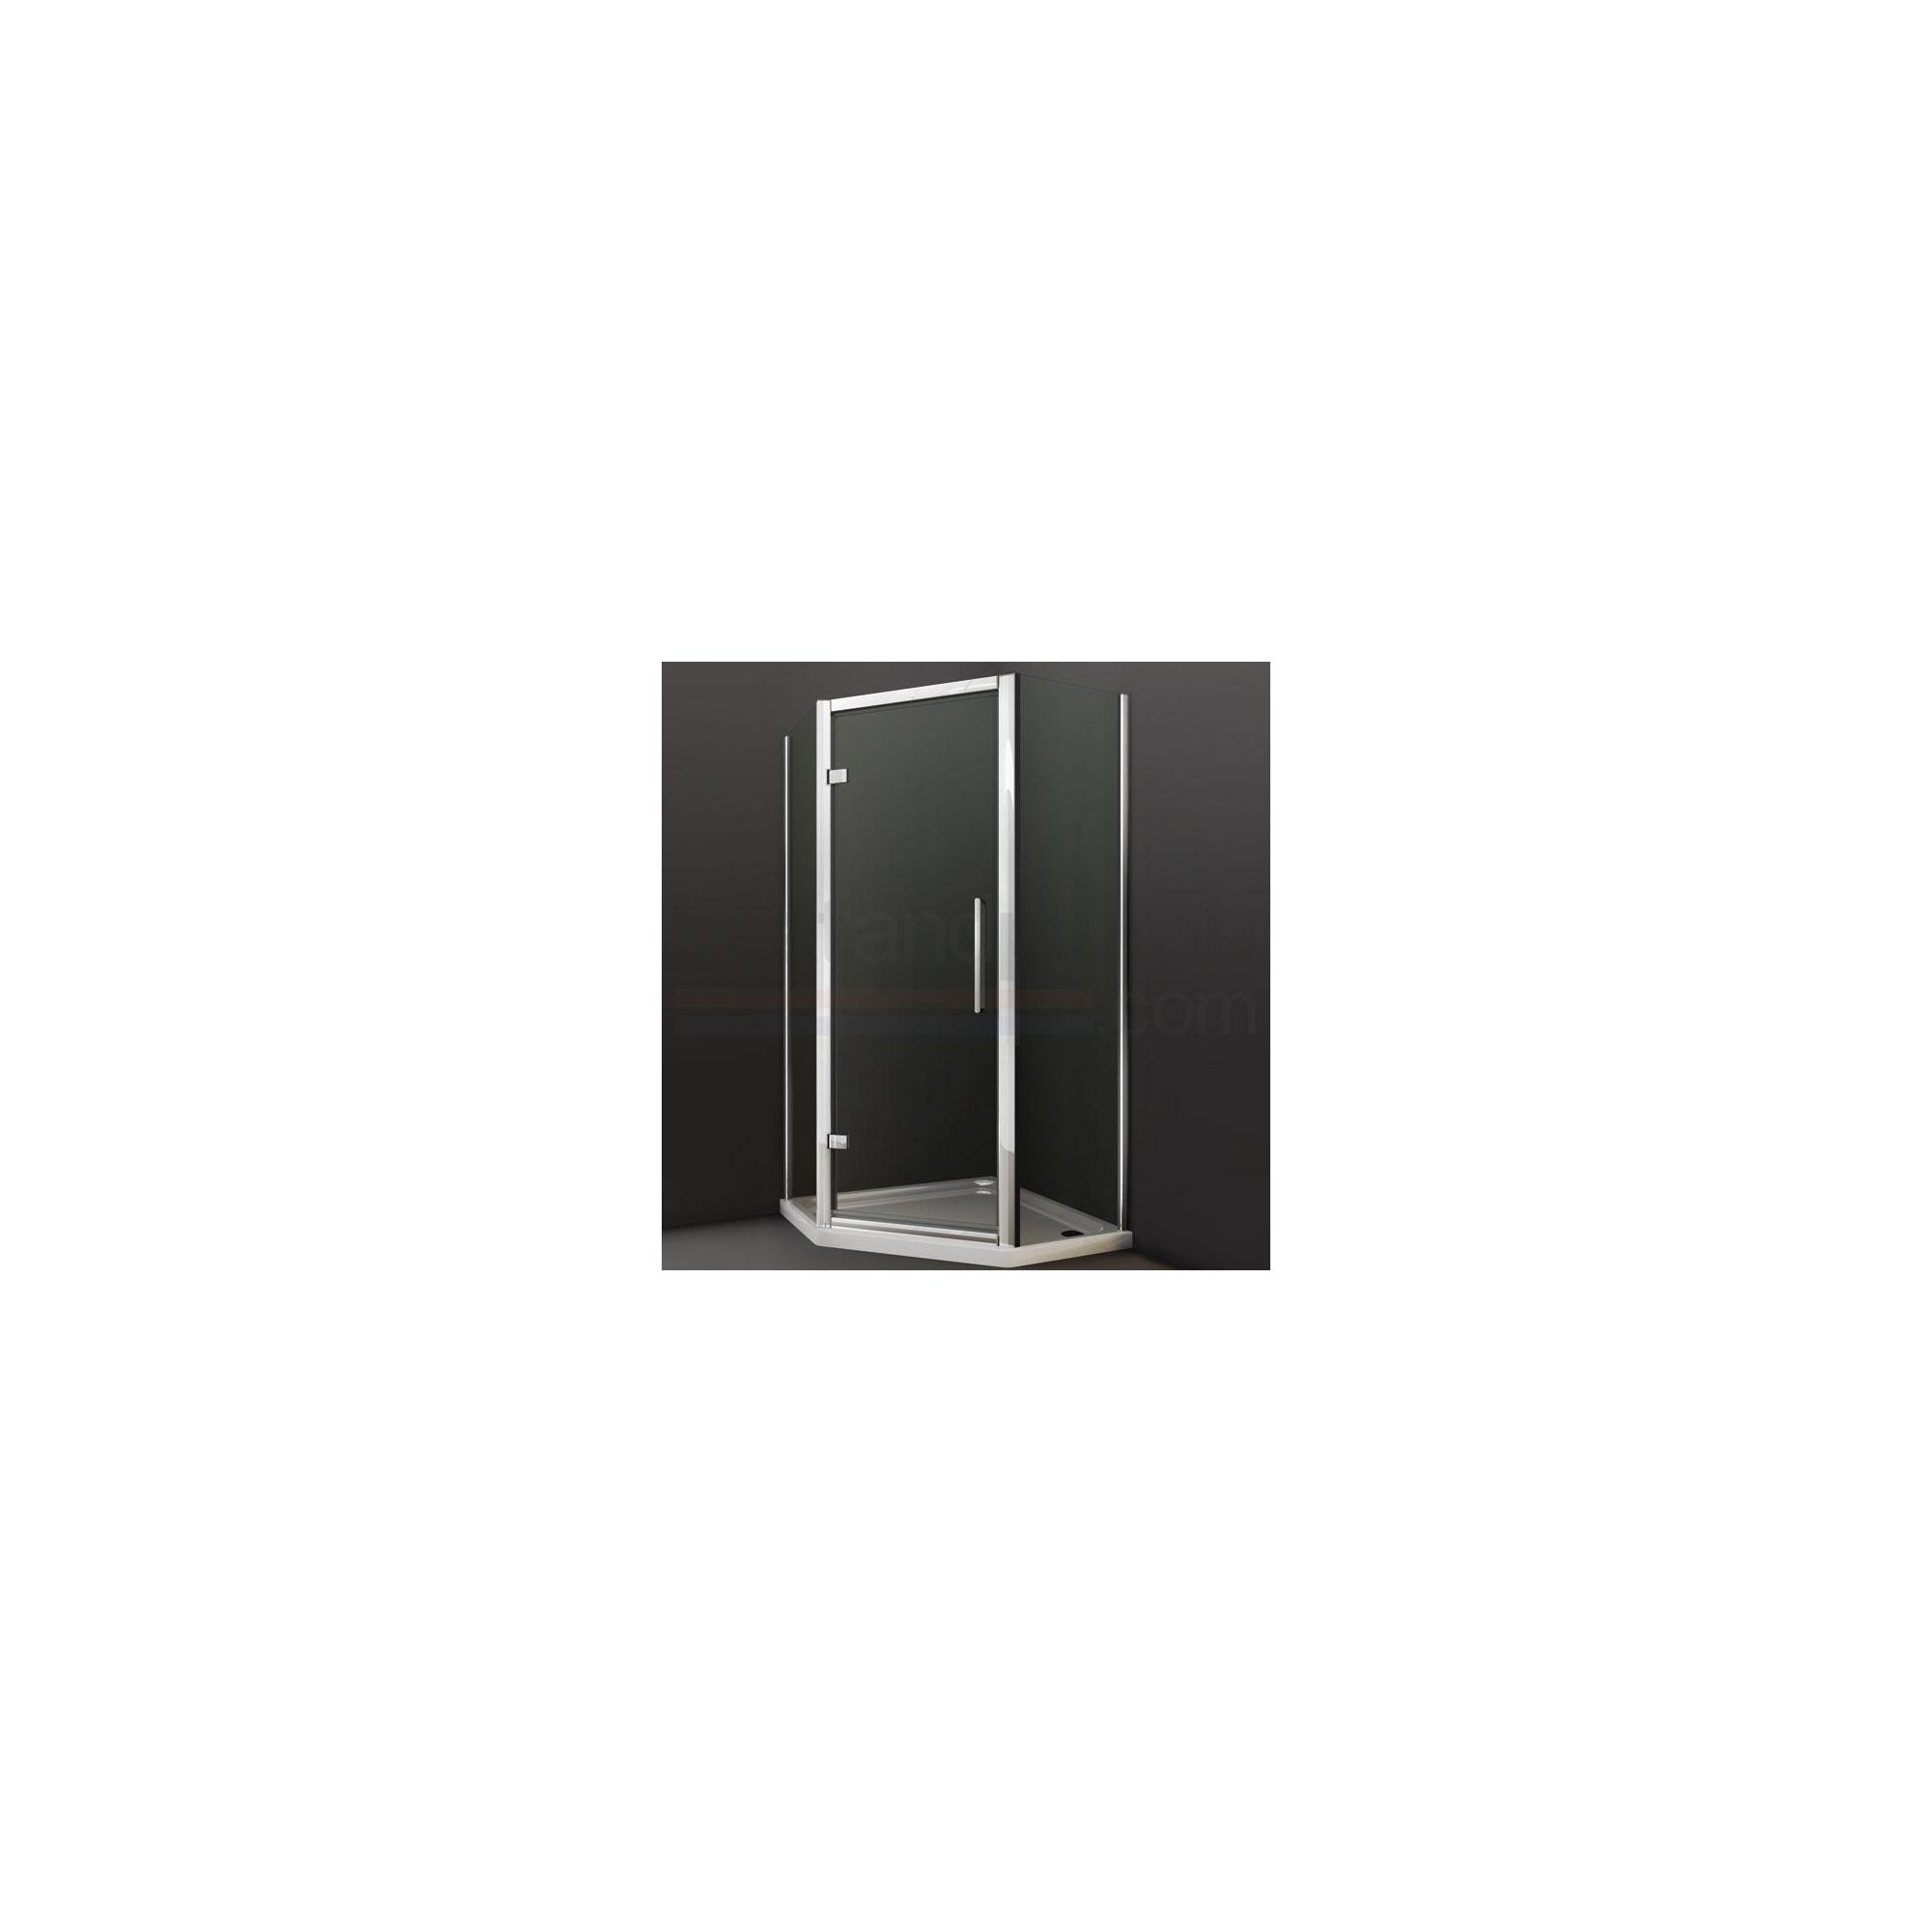 Merlyn Series 8 Hinged Door with Side Panel Shower Enclosure 700mm (Complete with Tray) - 8mm Glass at Tesco Direct